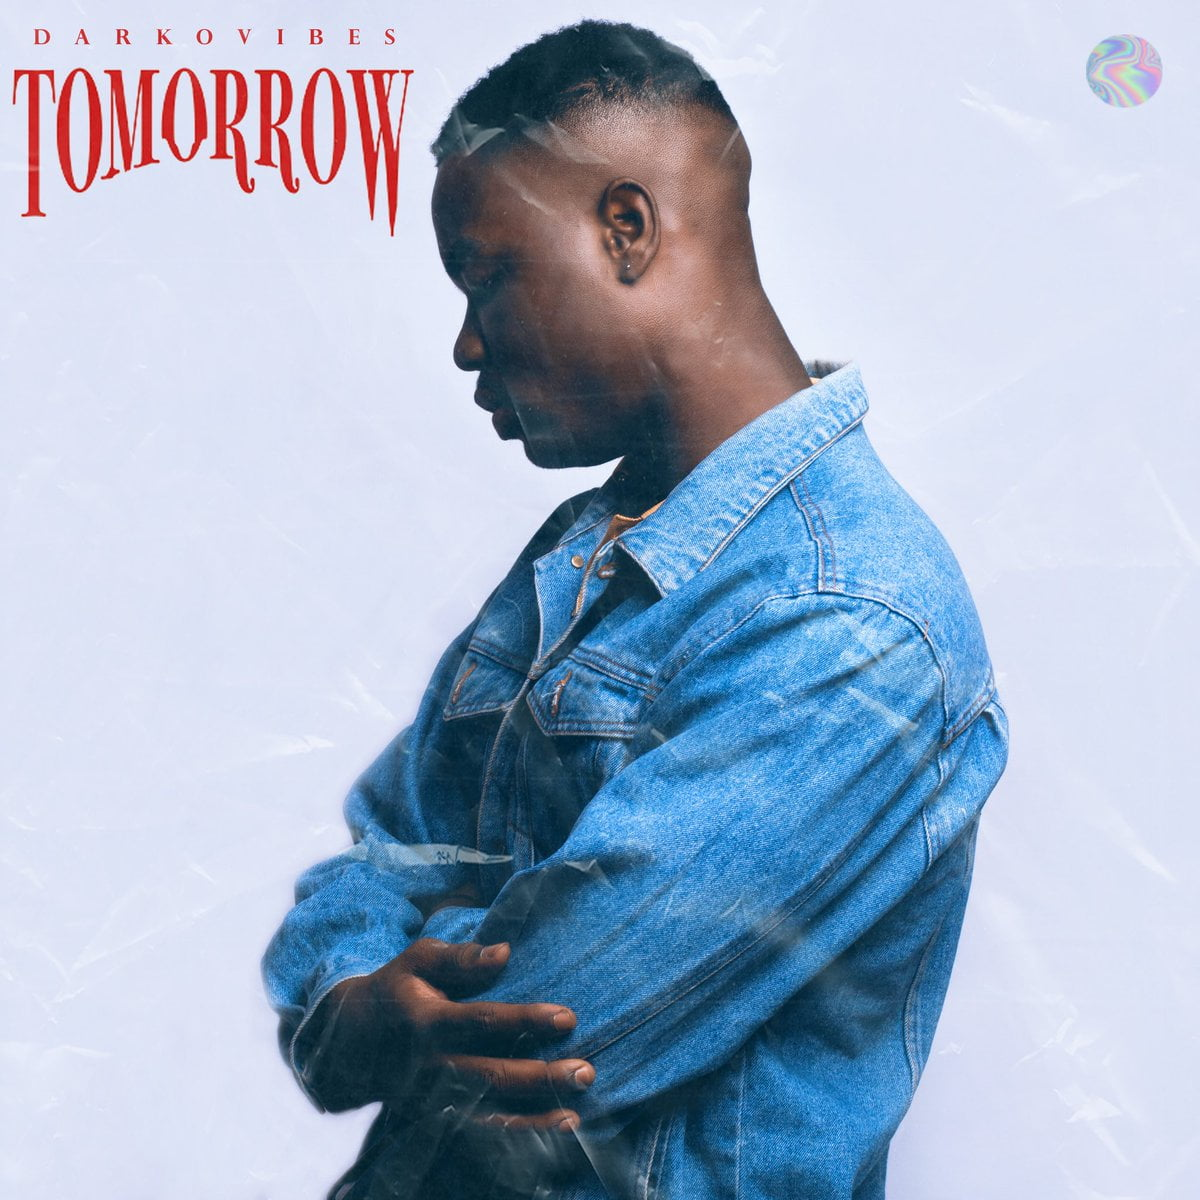 Darkovibes – Tomorrow (Prod. By Kuvie & Mixed by Vacs)